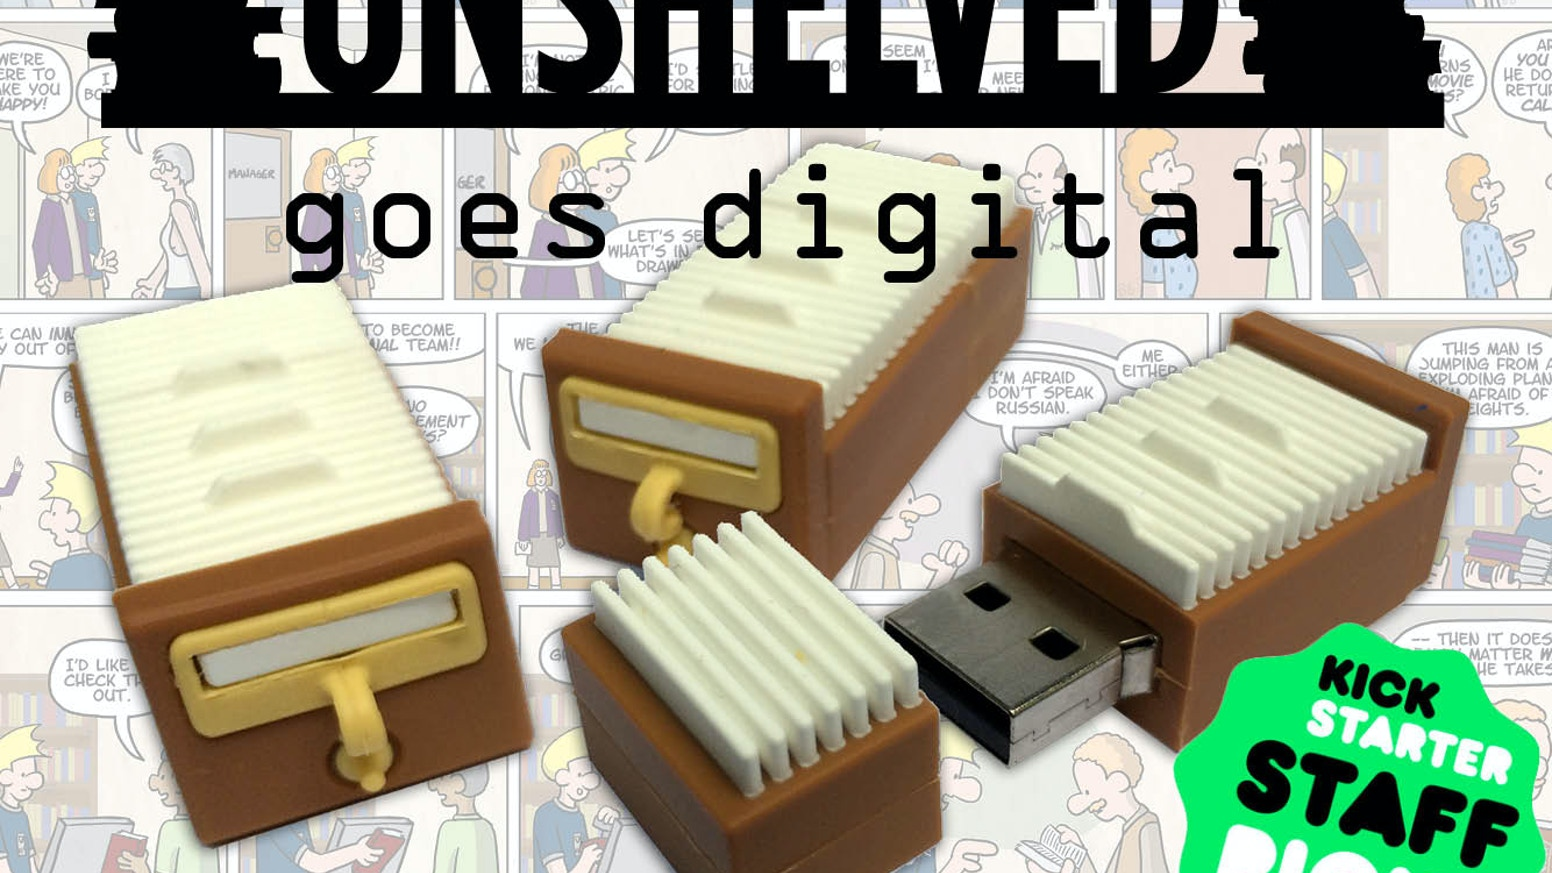 Own the most comprehensive Unshelved collection ever assembled, digitally remastered onto a USB drive shaped like a card catalog drawer